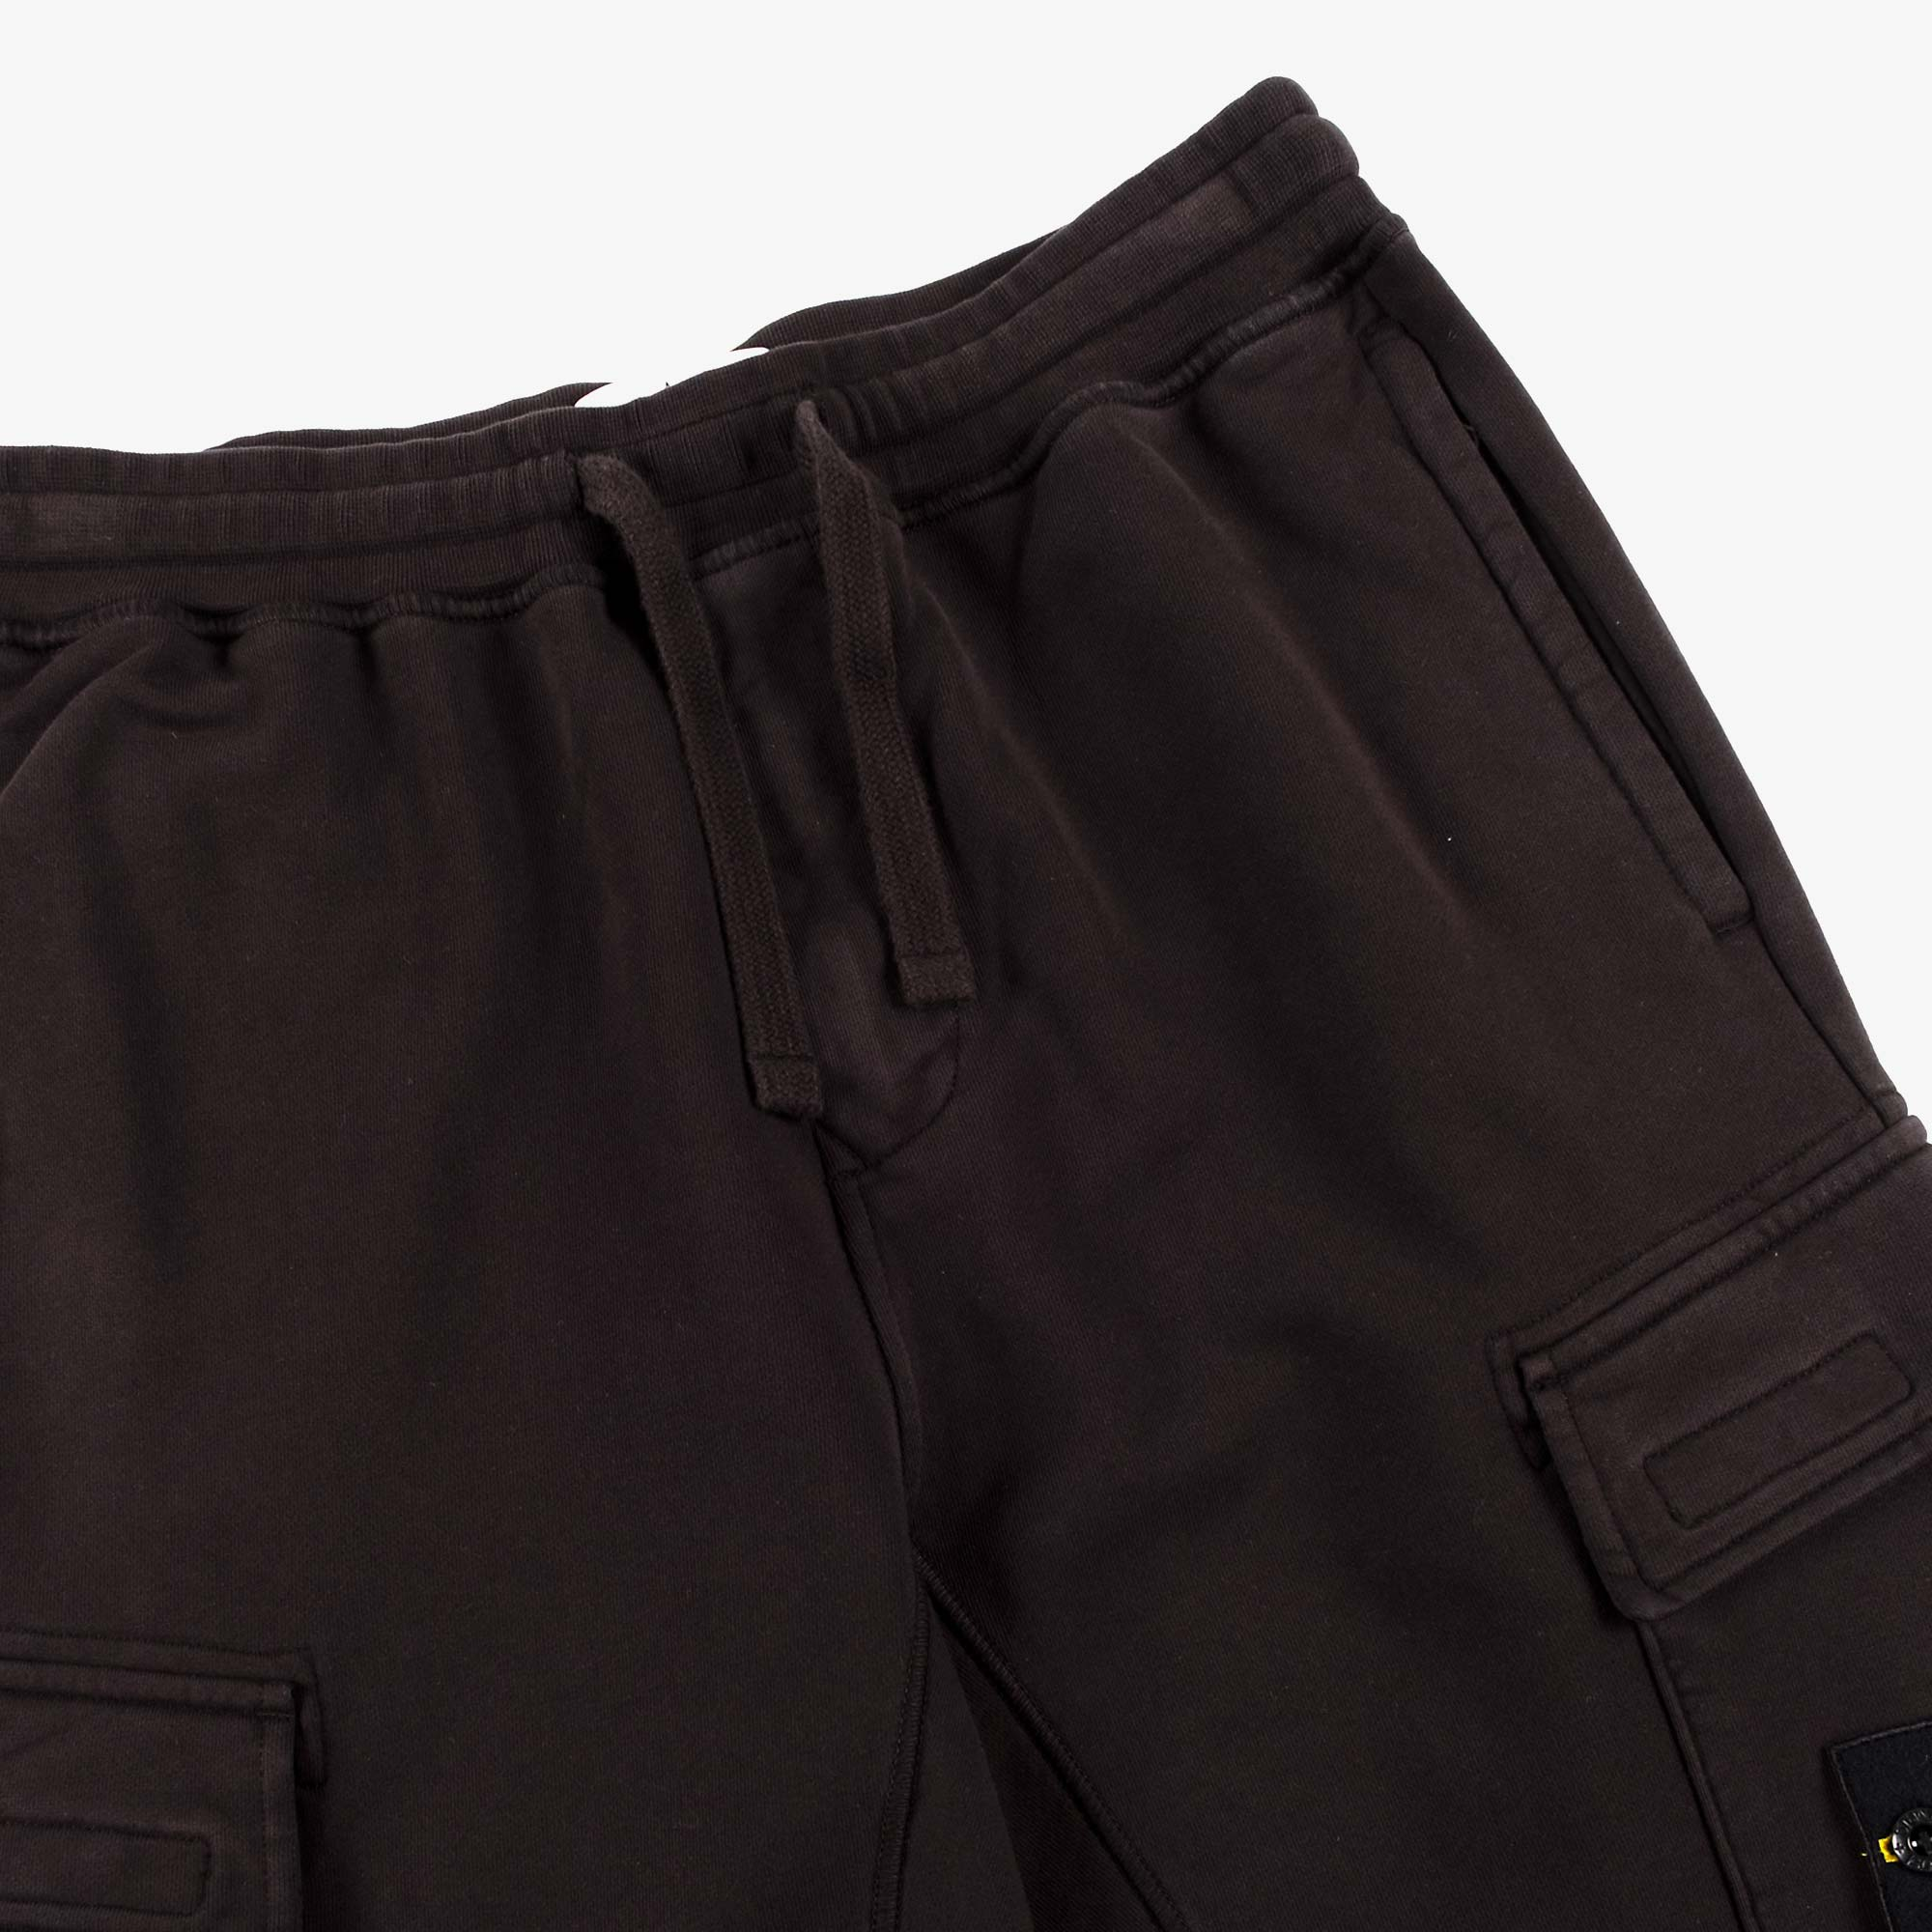 Stone Island Fleece Pants 741565251 - Black 4